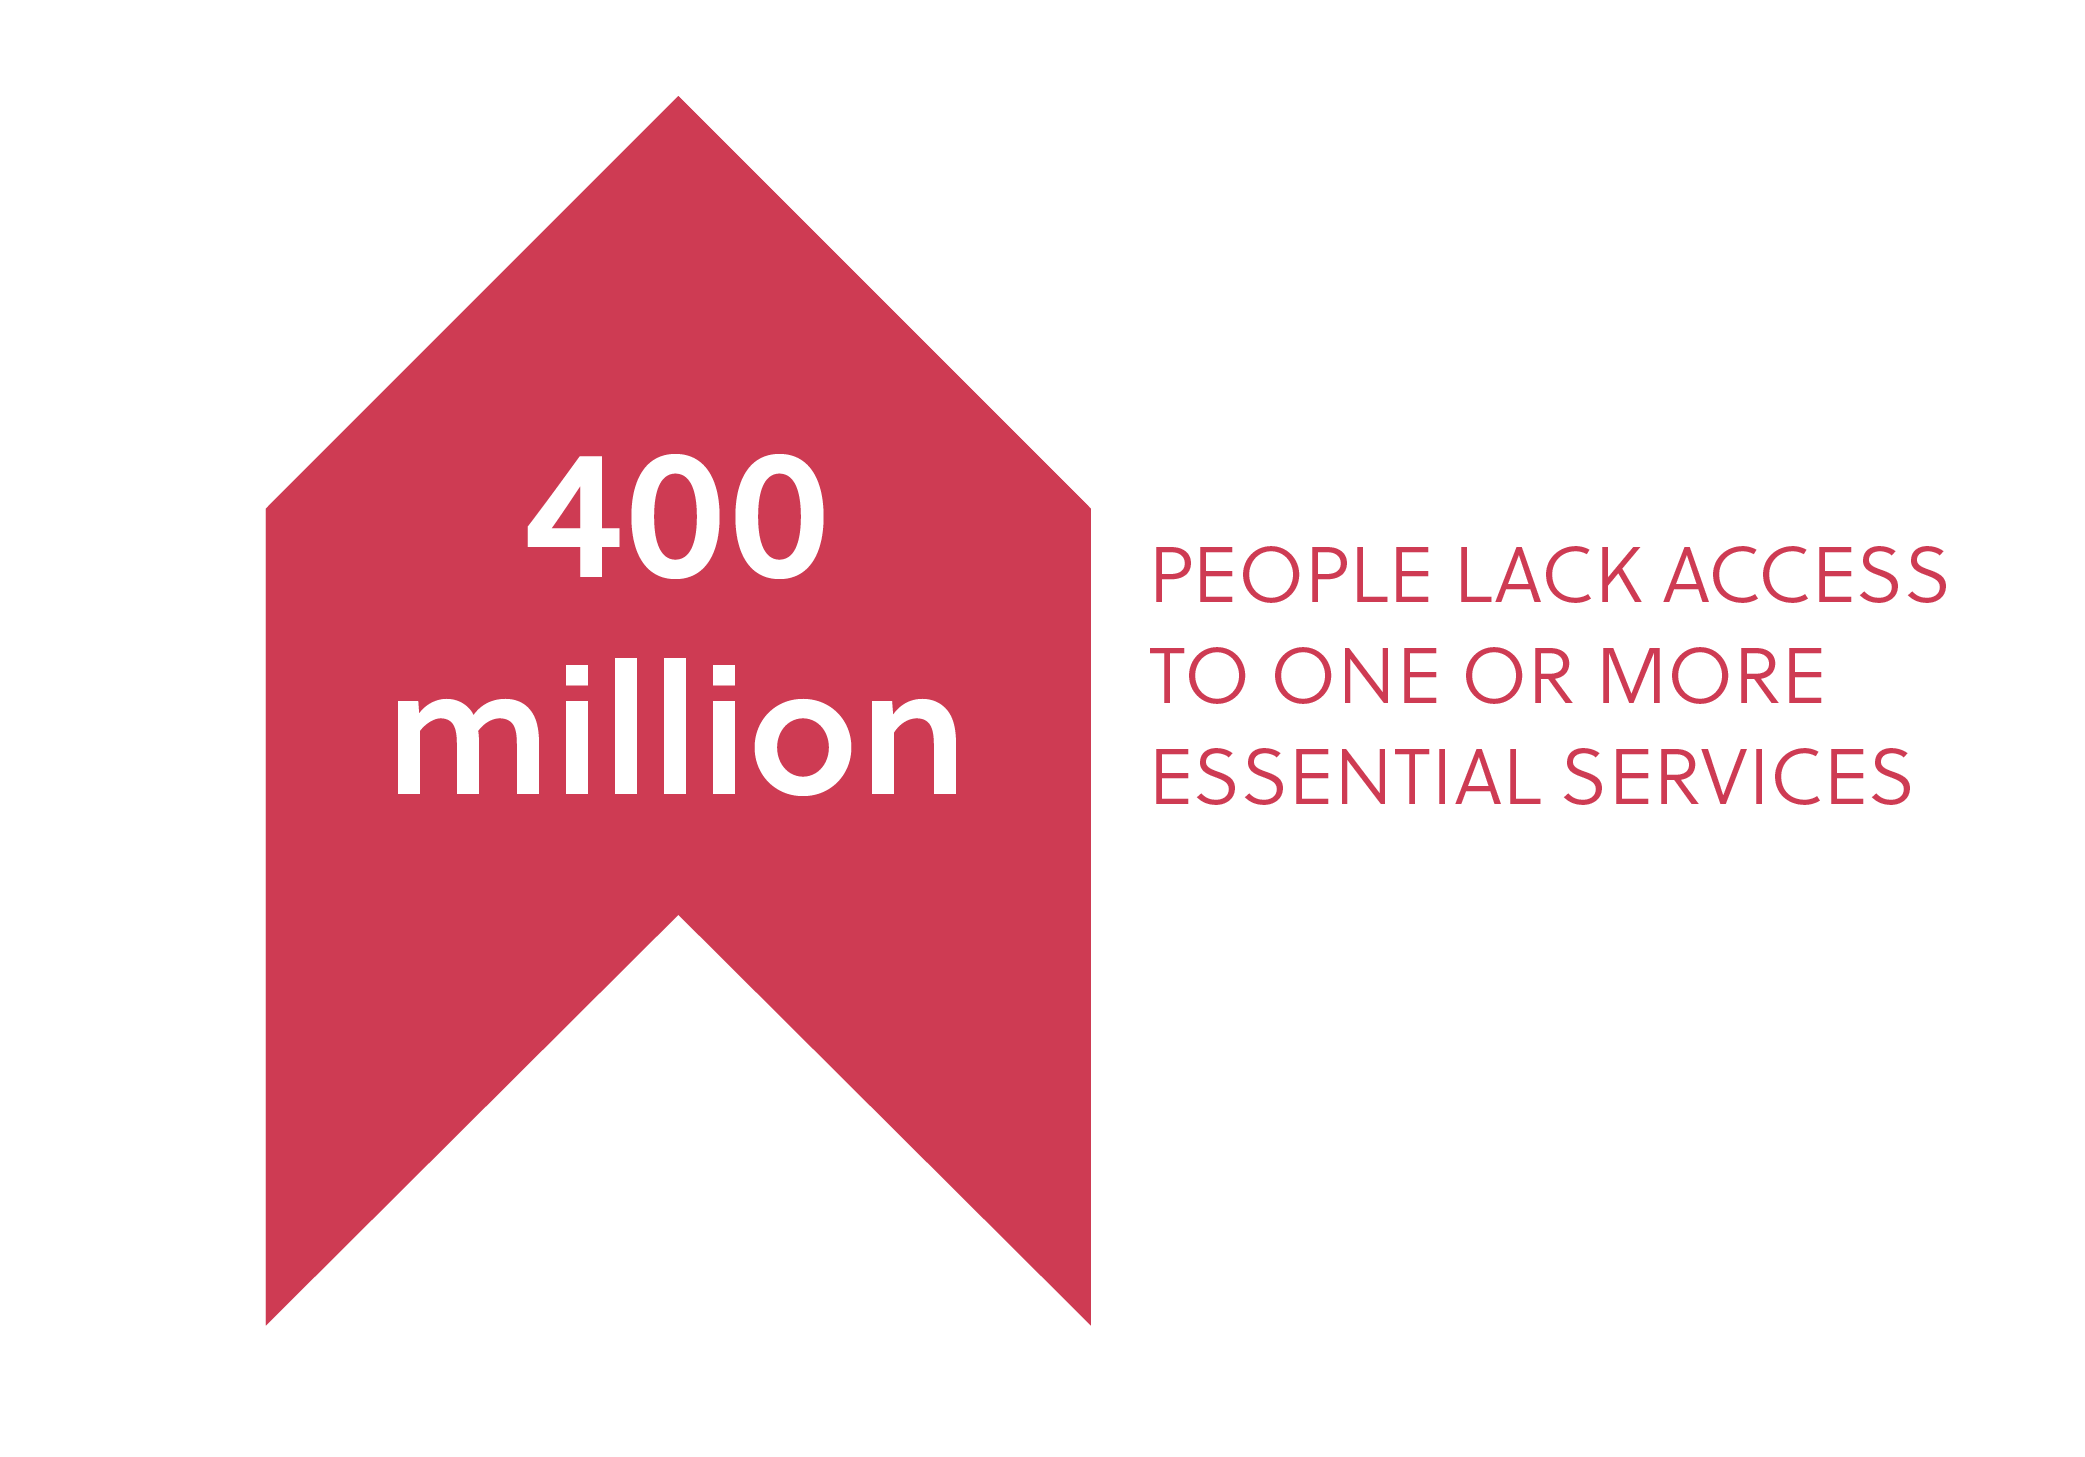 400 million people lack access to one or more essential services